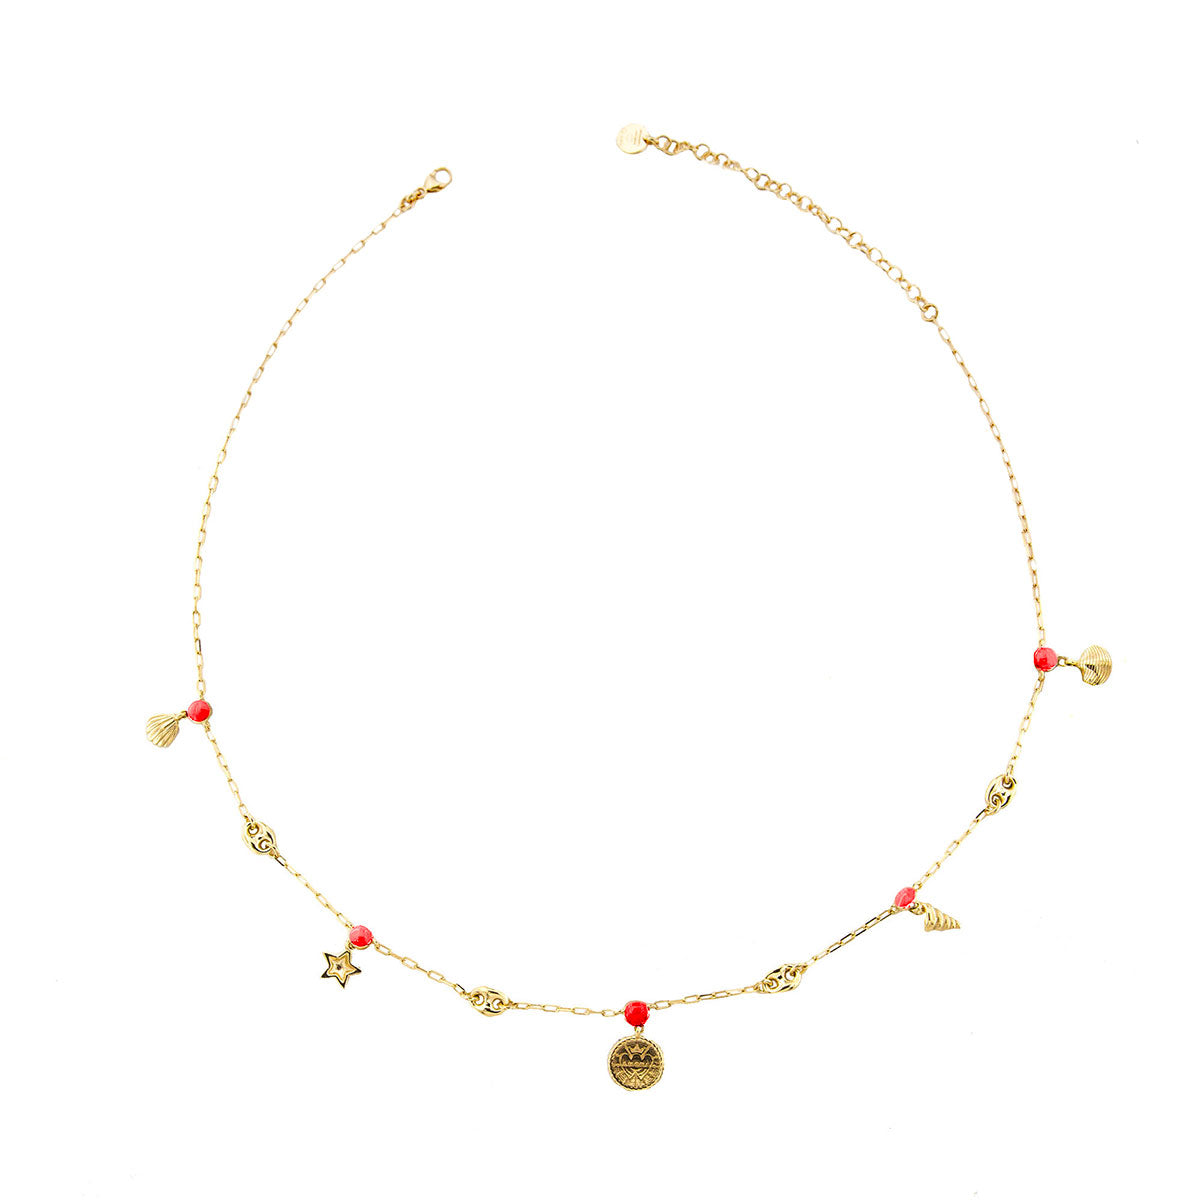 Choker - Shell Charms and Coral details